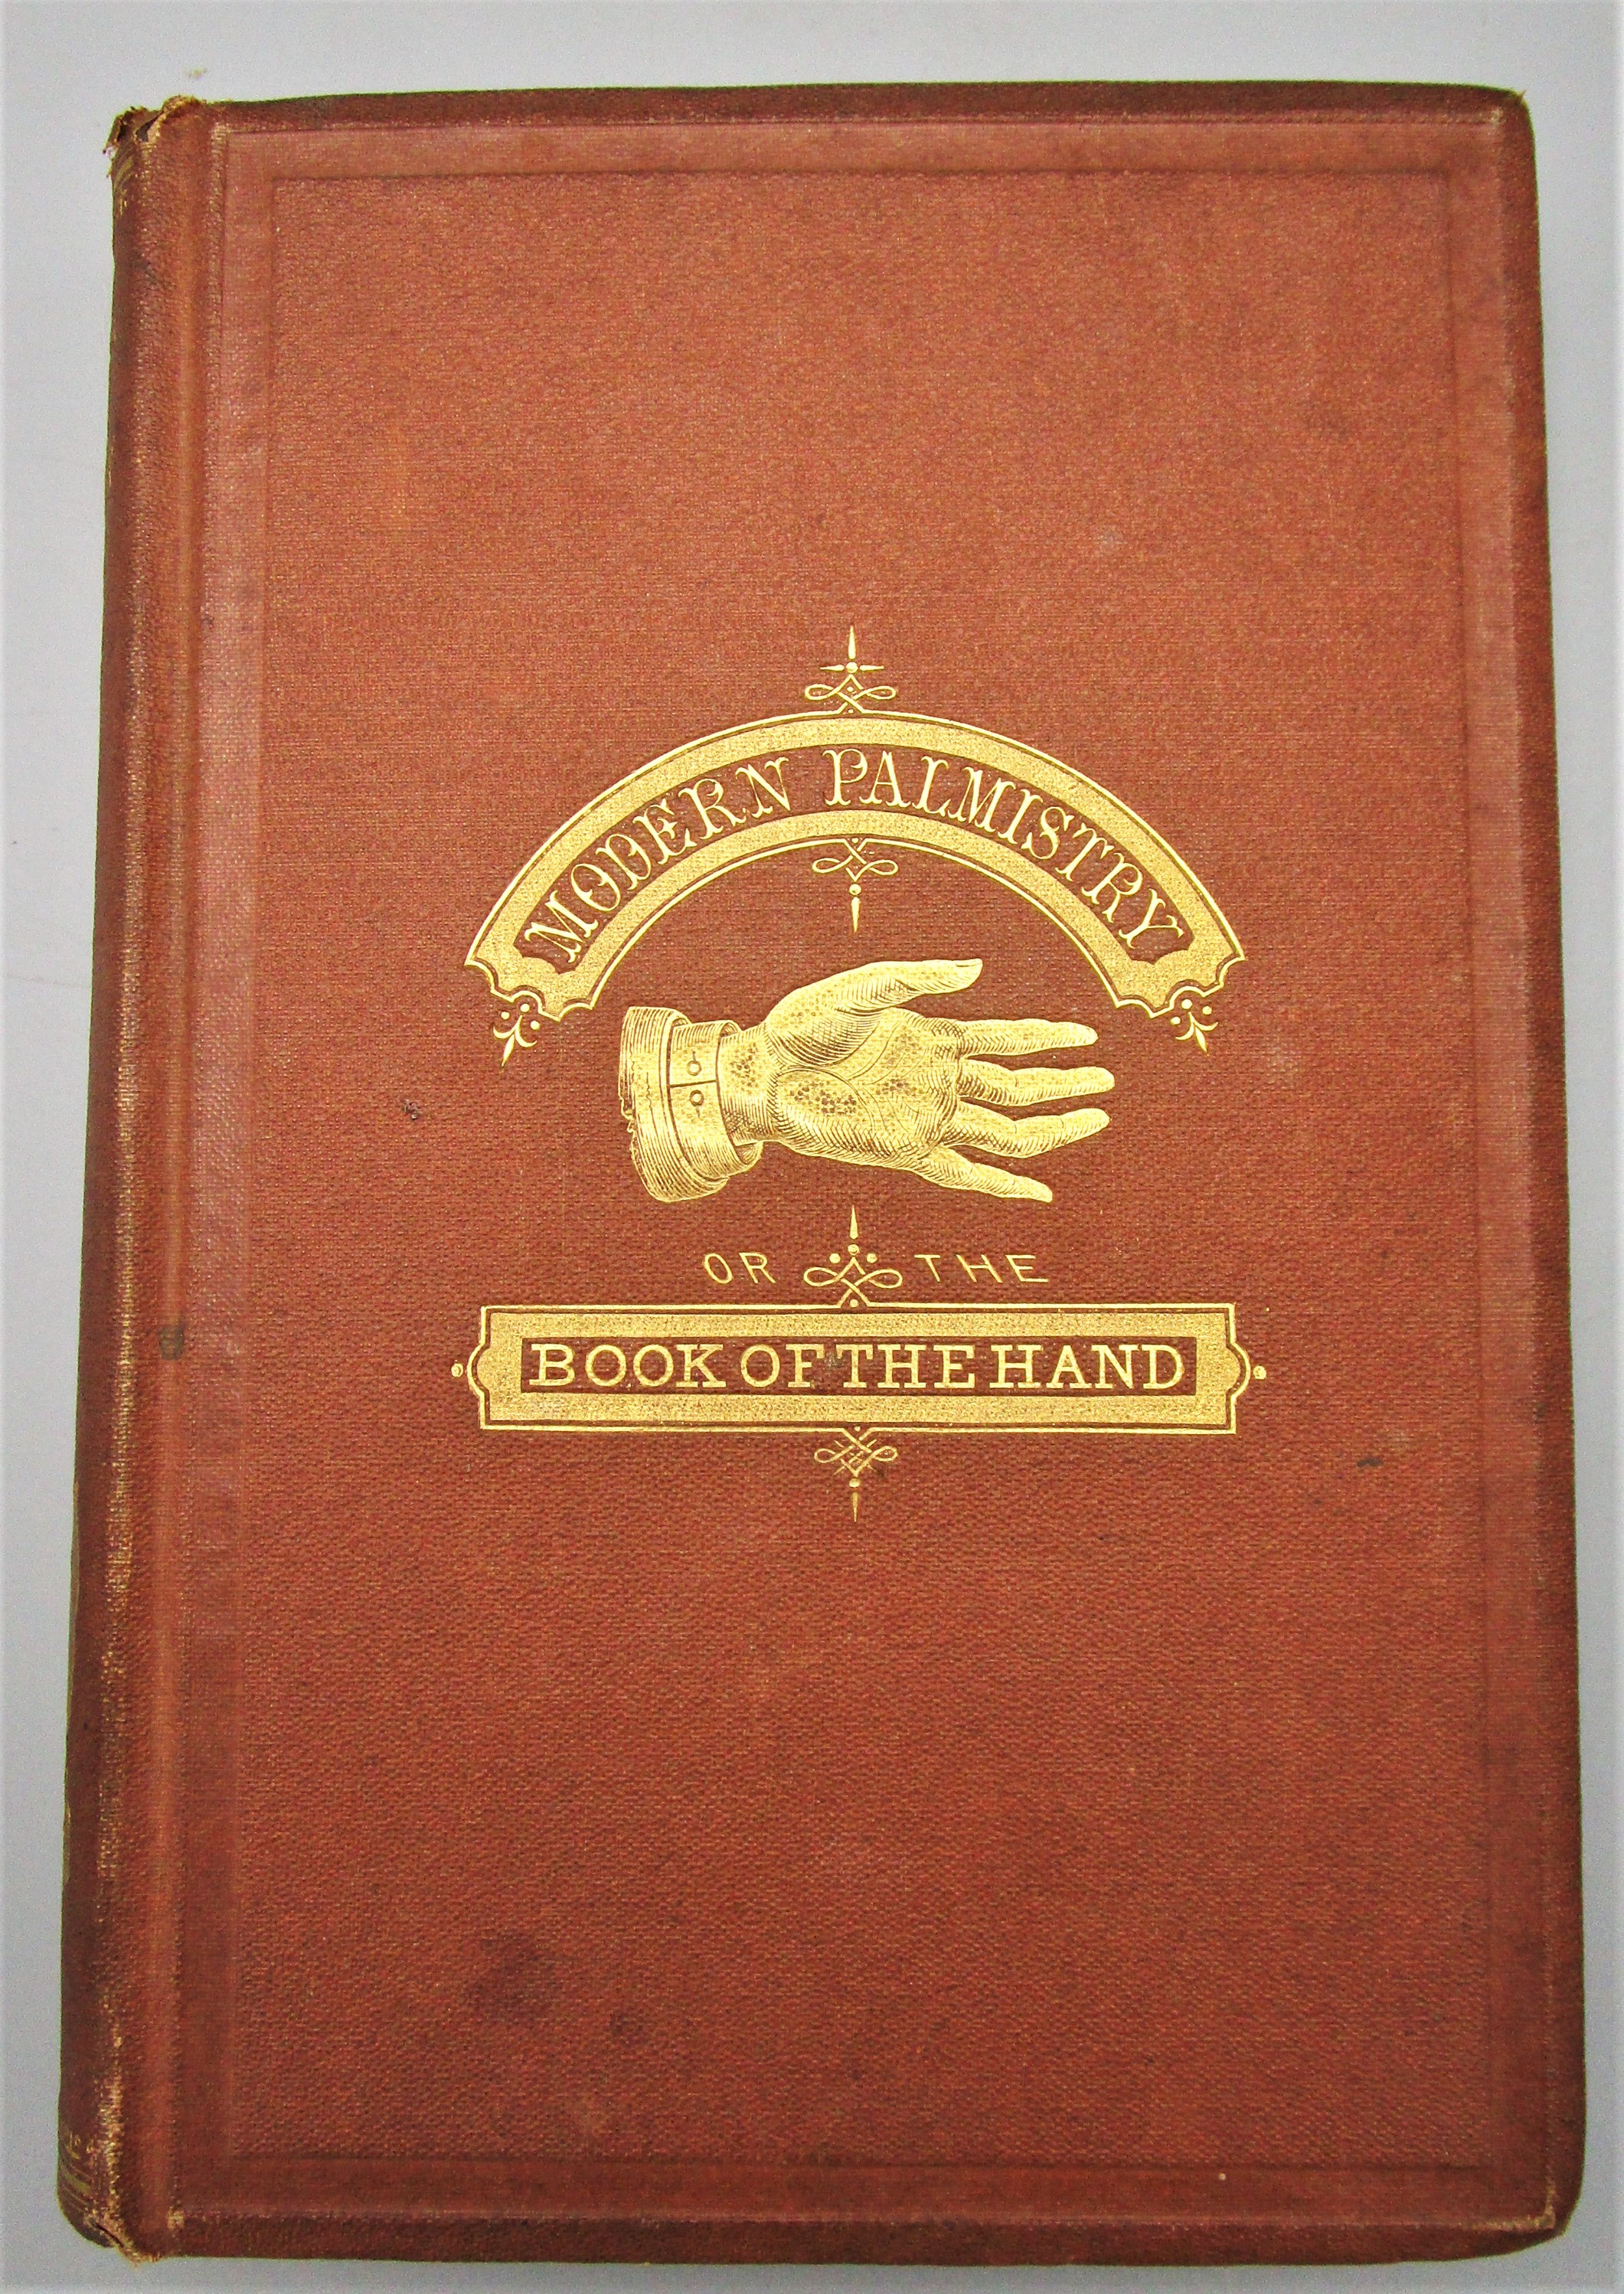 MODERN PALMISTRY; OR THE BOOK OF THE HAND, by A. R. Craig - 1867